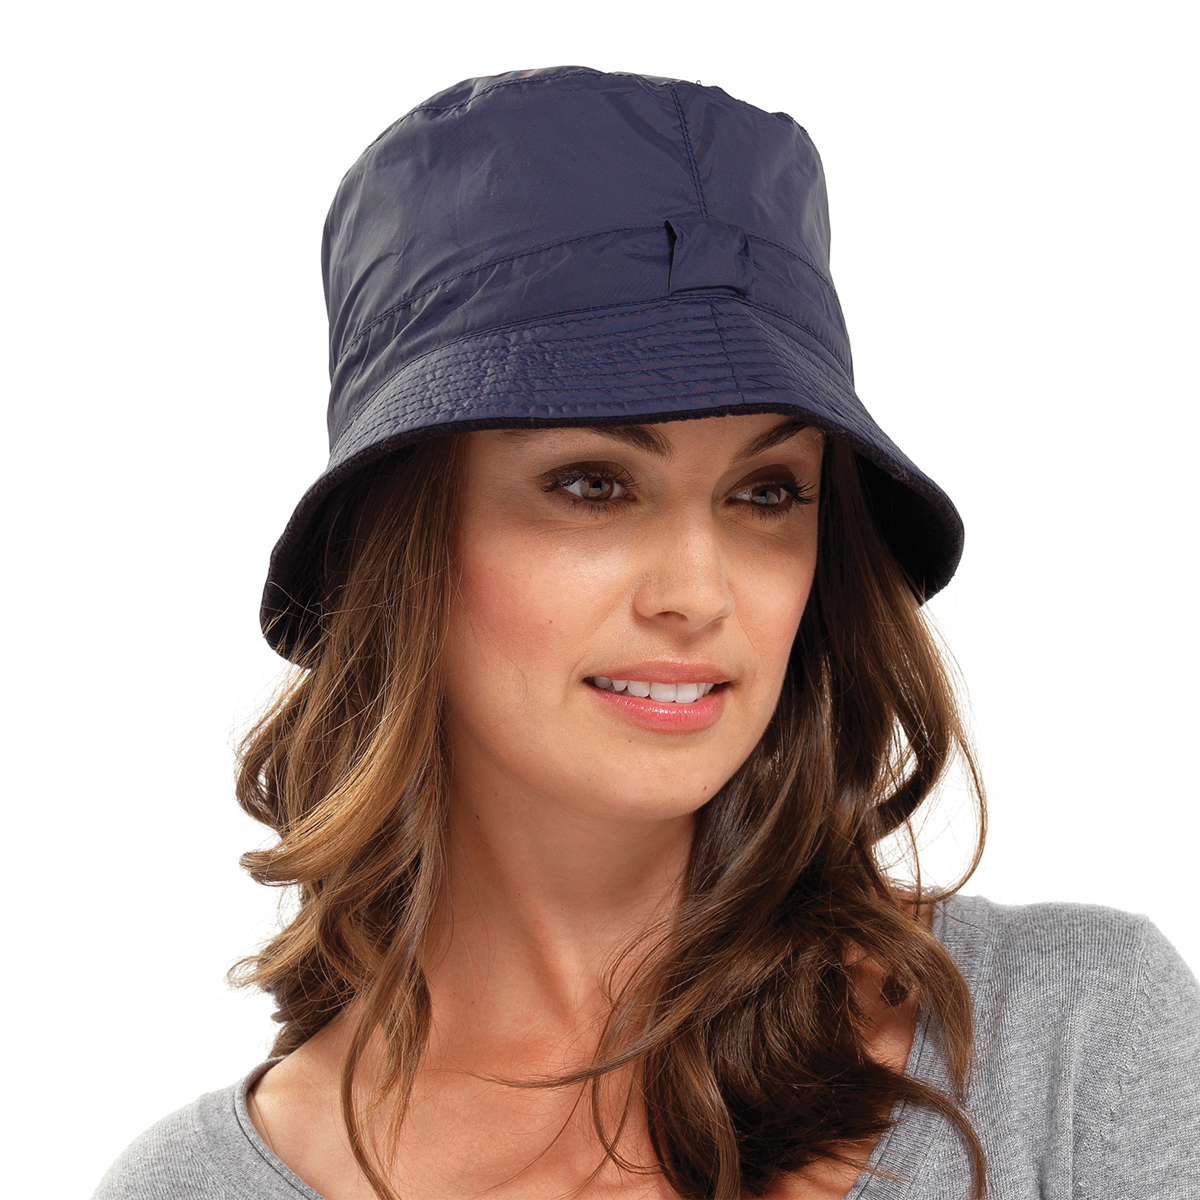 waterproof hat mens womens casual country